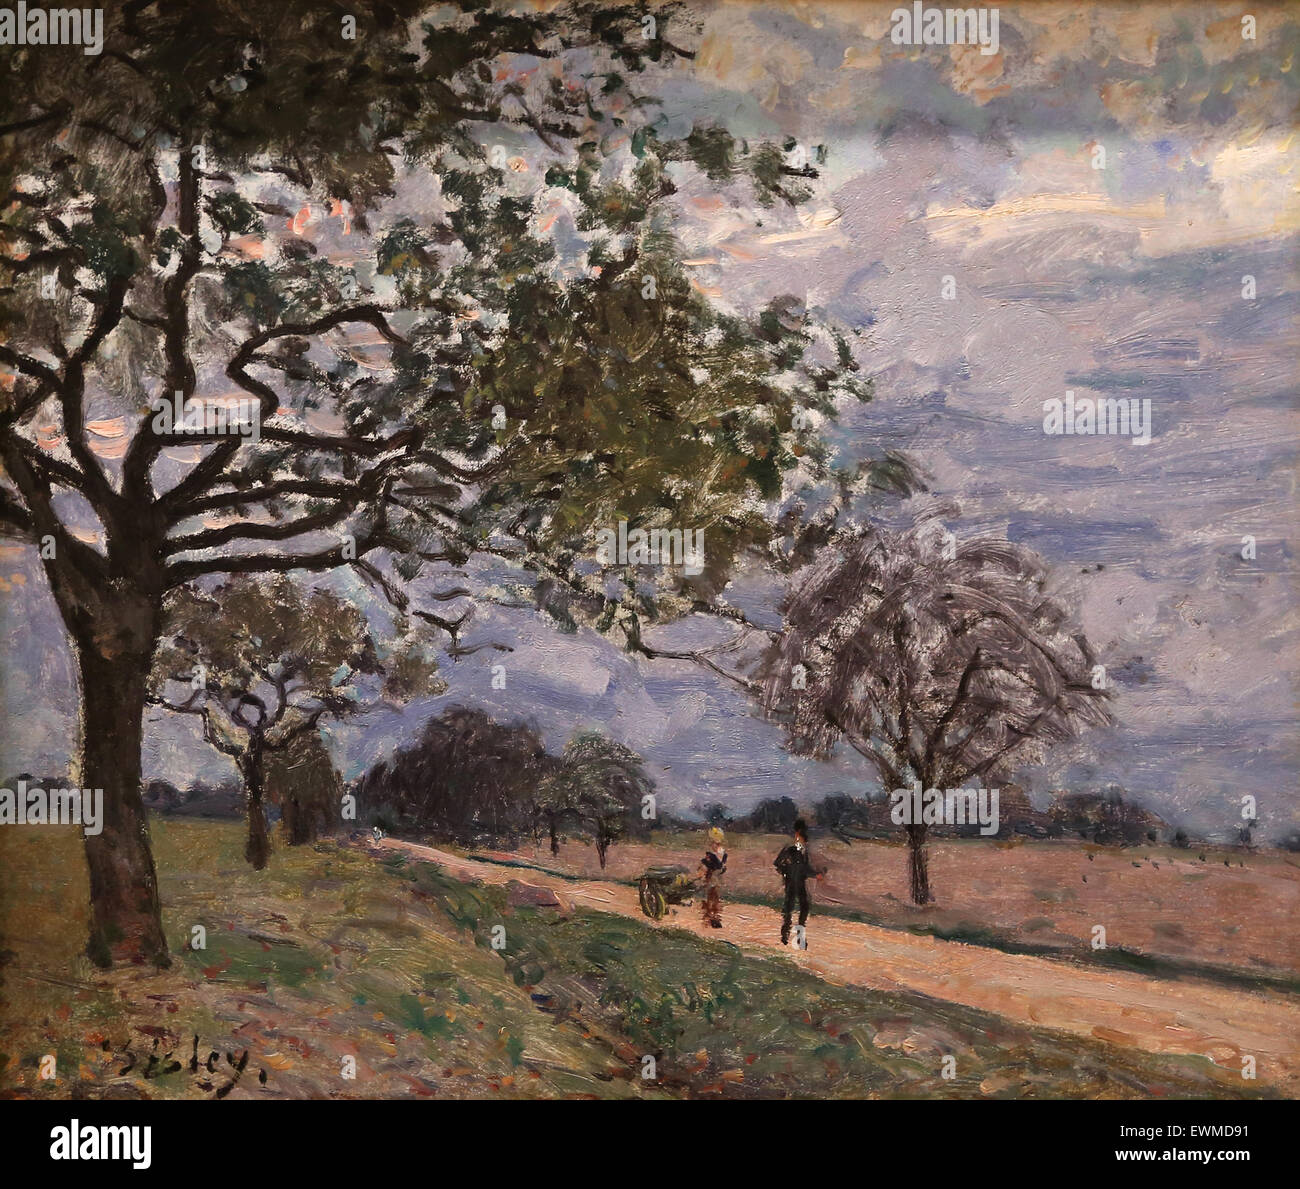 Alfred Sisley (1839-1899). French painter. The Road from Versailles to Louveciennes. Probaby, 1879. Oil on canvas. - Stock Image